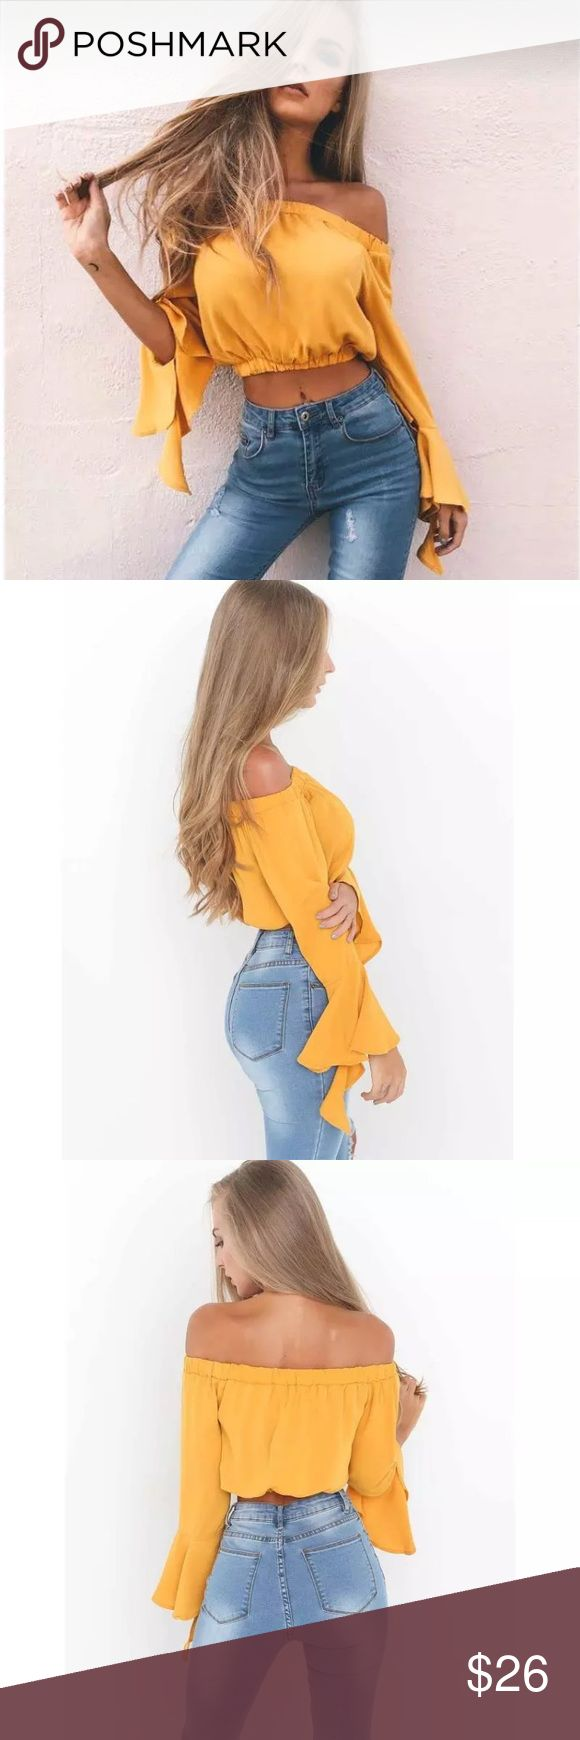 Off Shoulder Yellow Crop Top Off Shoulder Yellow Crop Top with Flowy Sleeves Tops Crop Tops